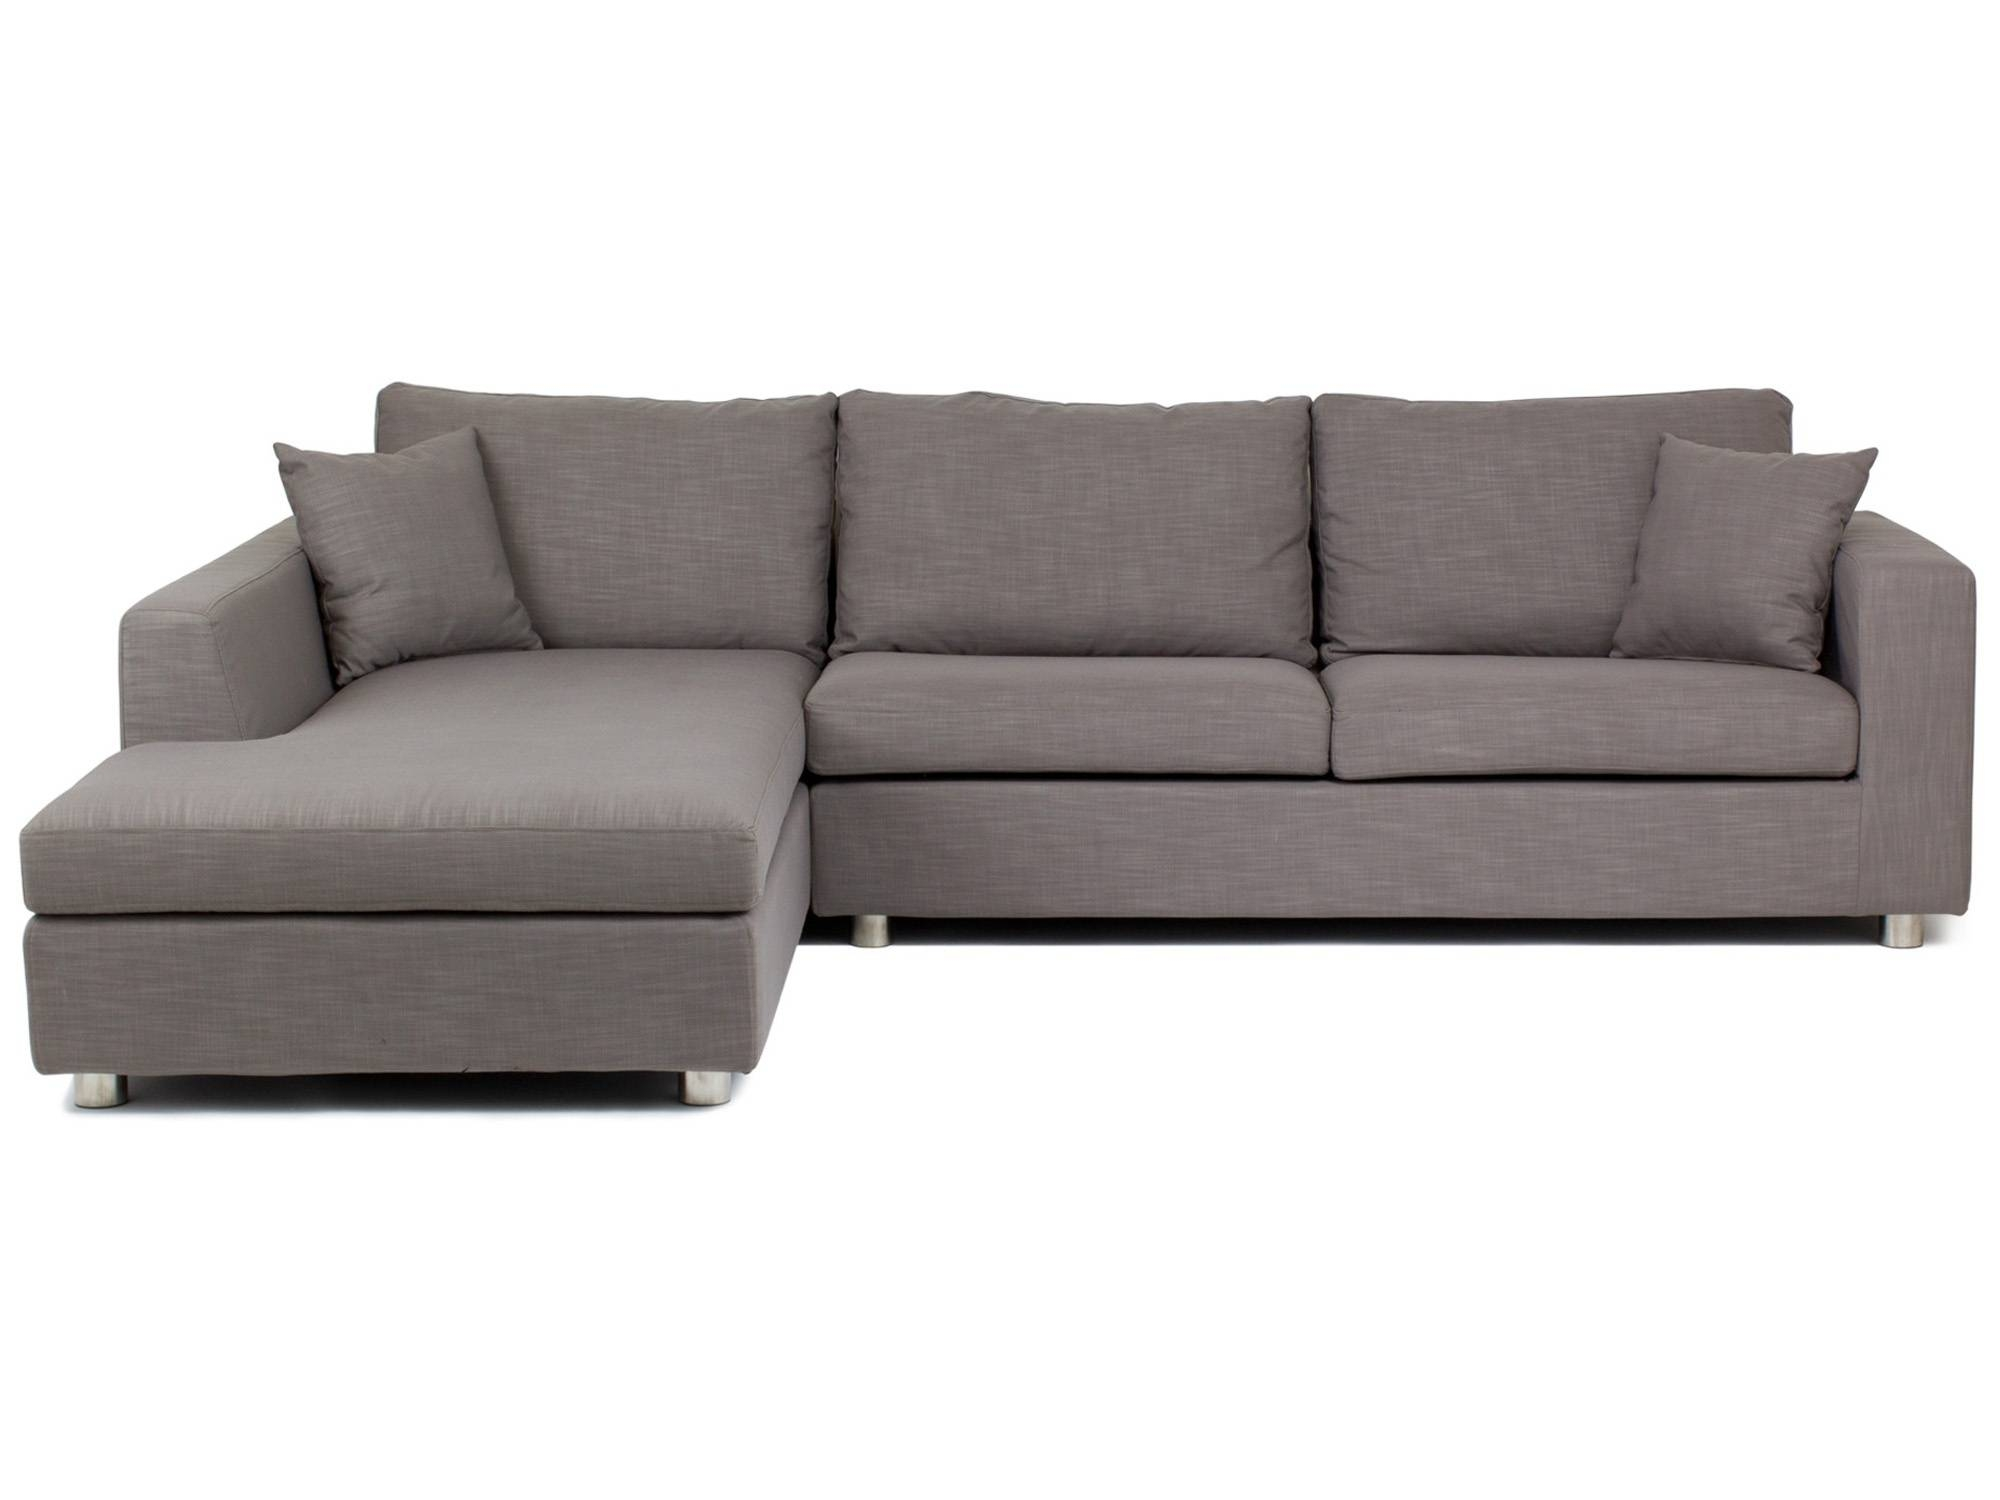 Corner Chaise Lounge Sofa Bed - Revistapacheco inside Chaise Longue Sofa Beds (Image 6 of 15)